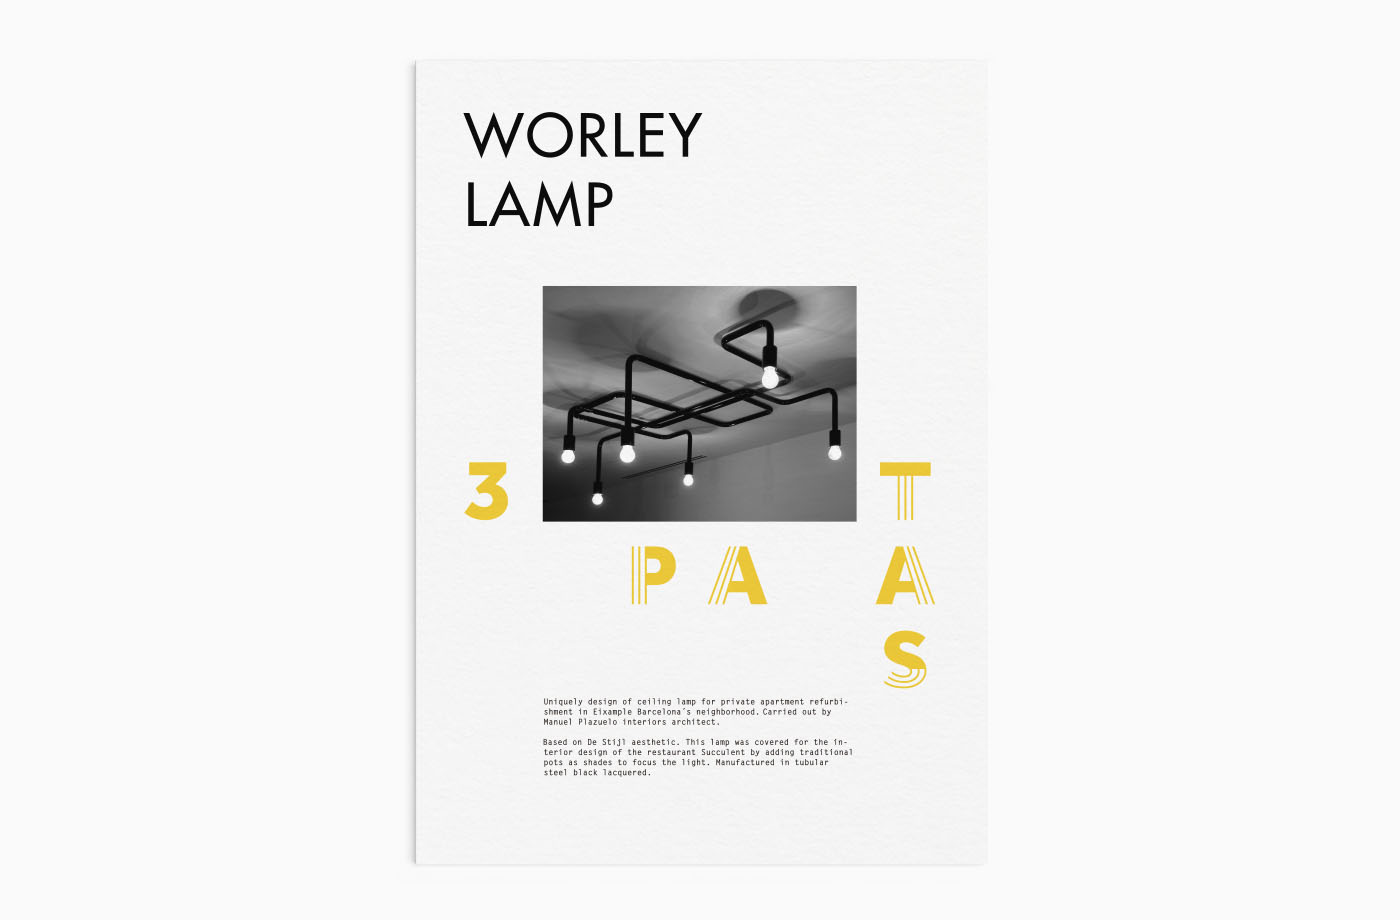 worley-lamp-3patas